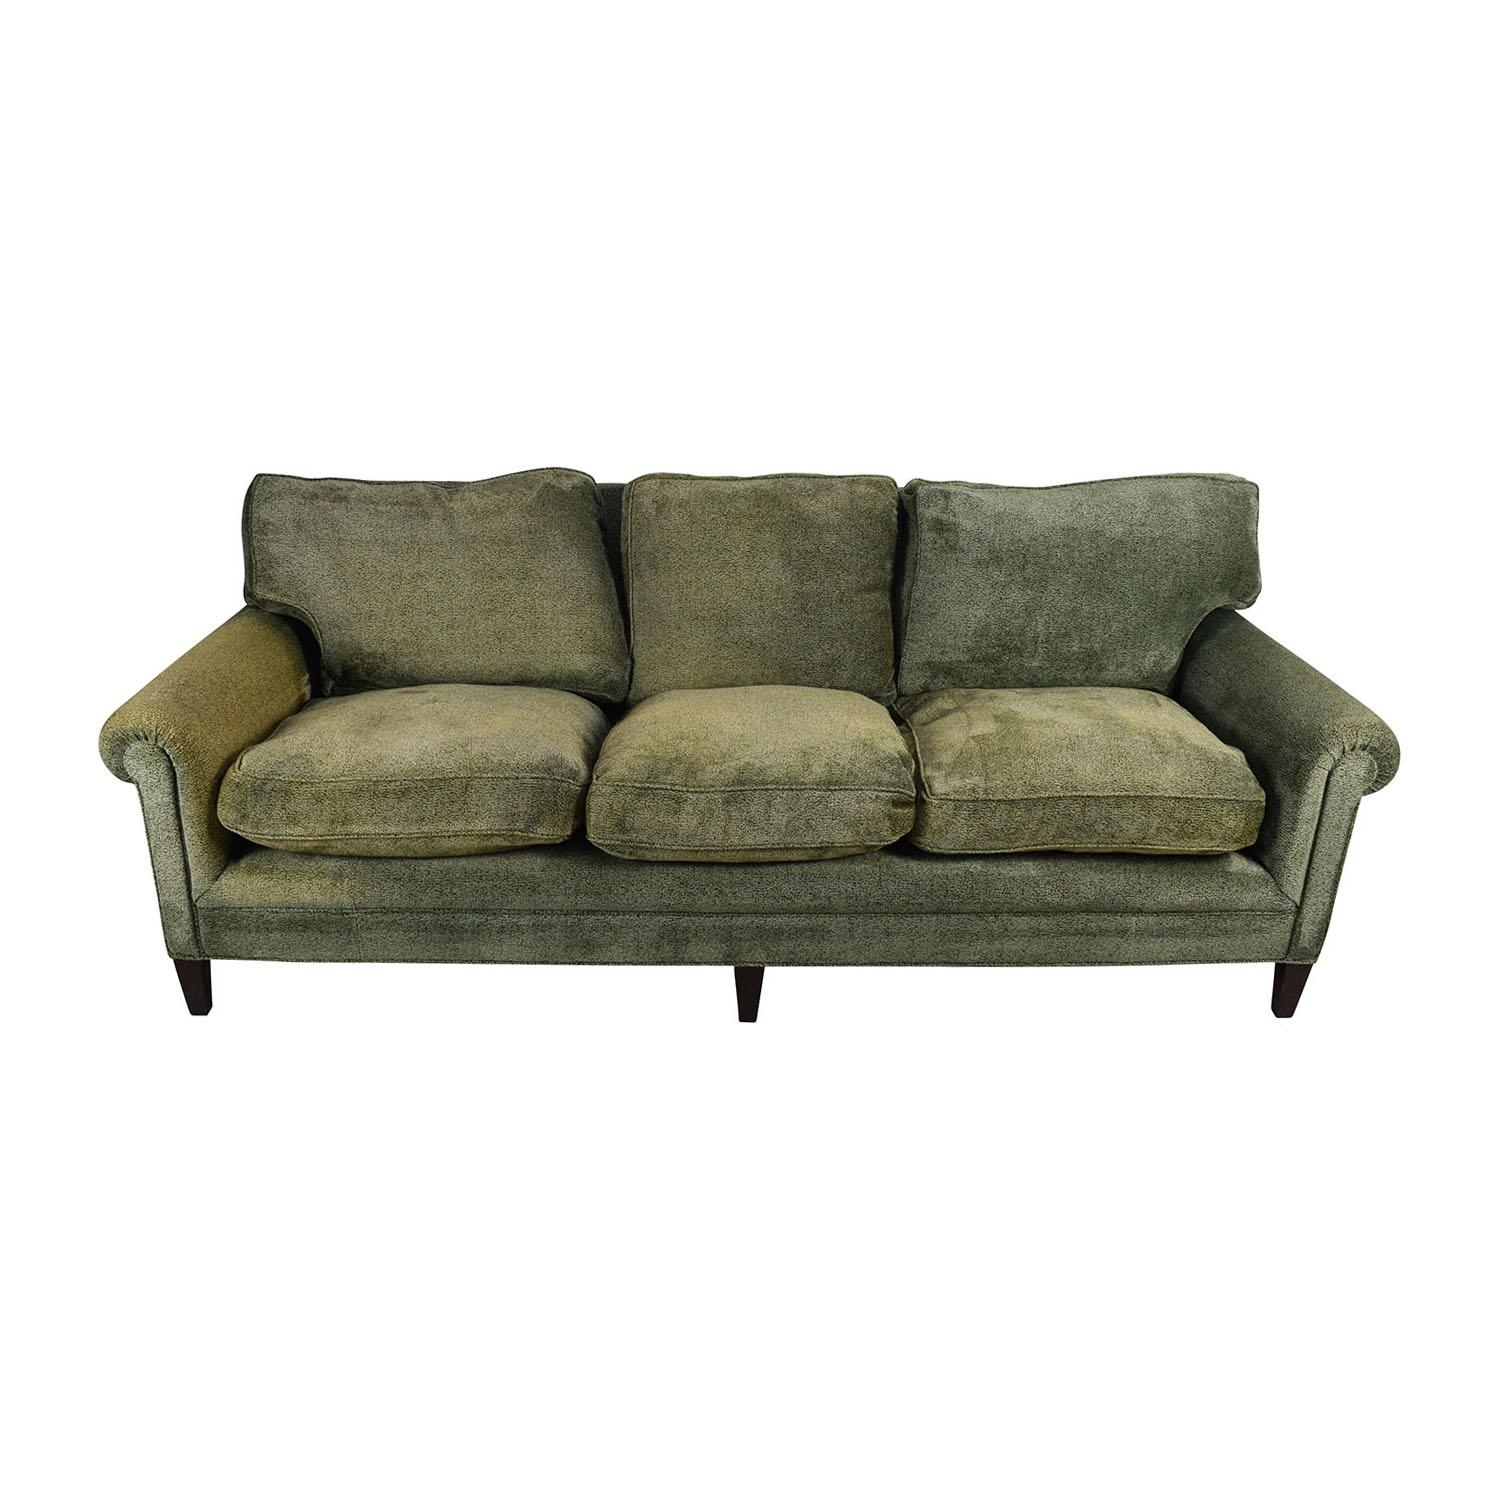 89% Off - George Smith George Smith Classic English Style Sofa / Sofas in Classic English Sofas